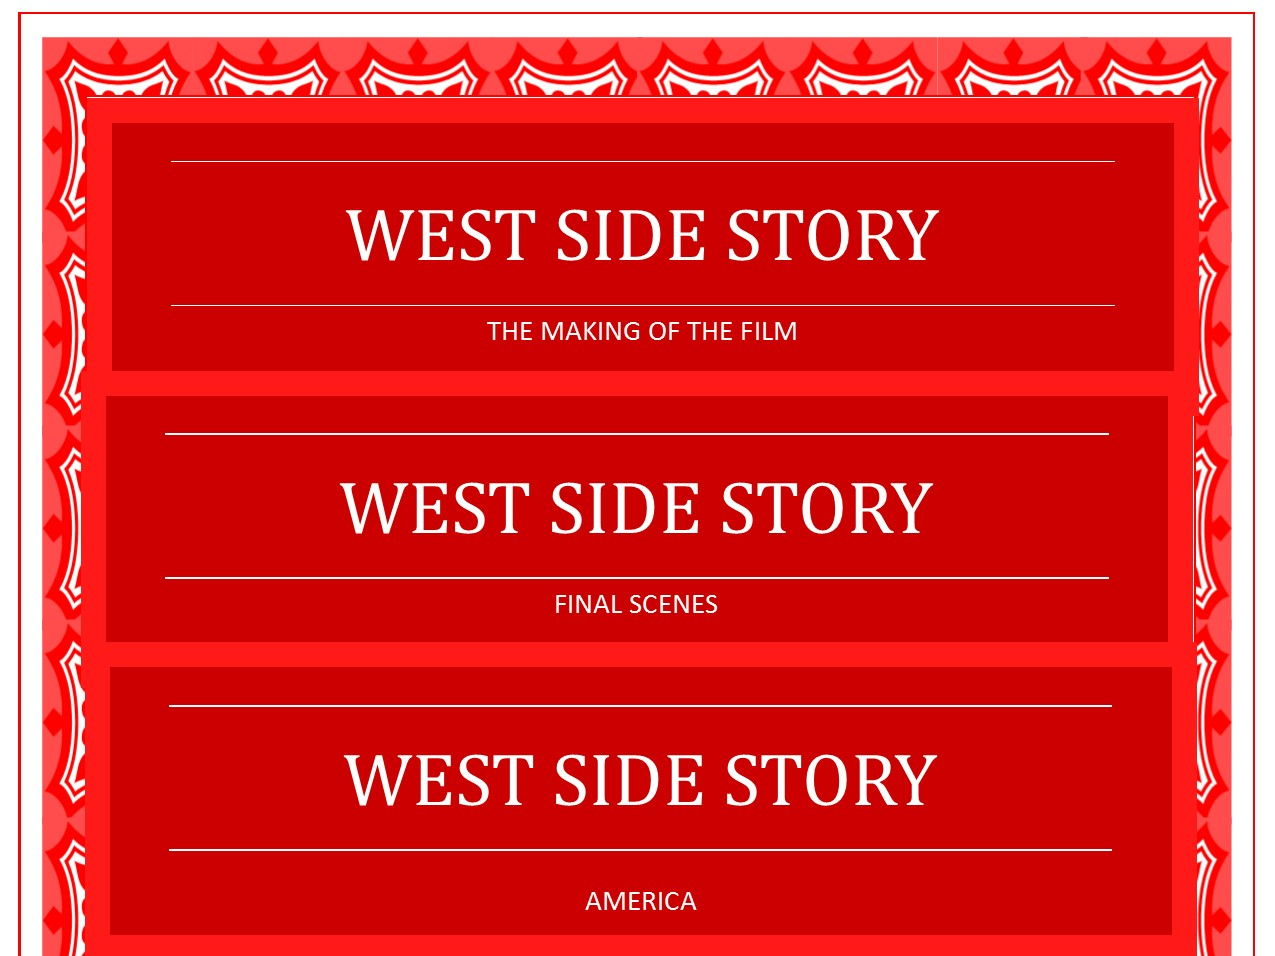 West Side Story questions bundle